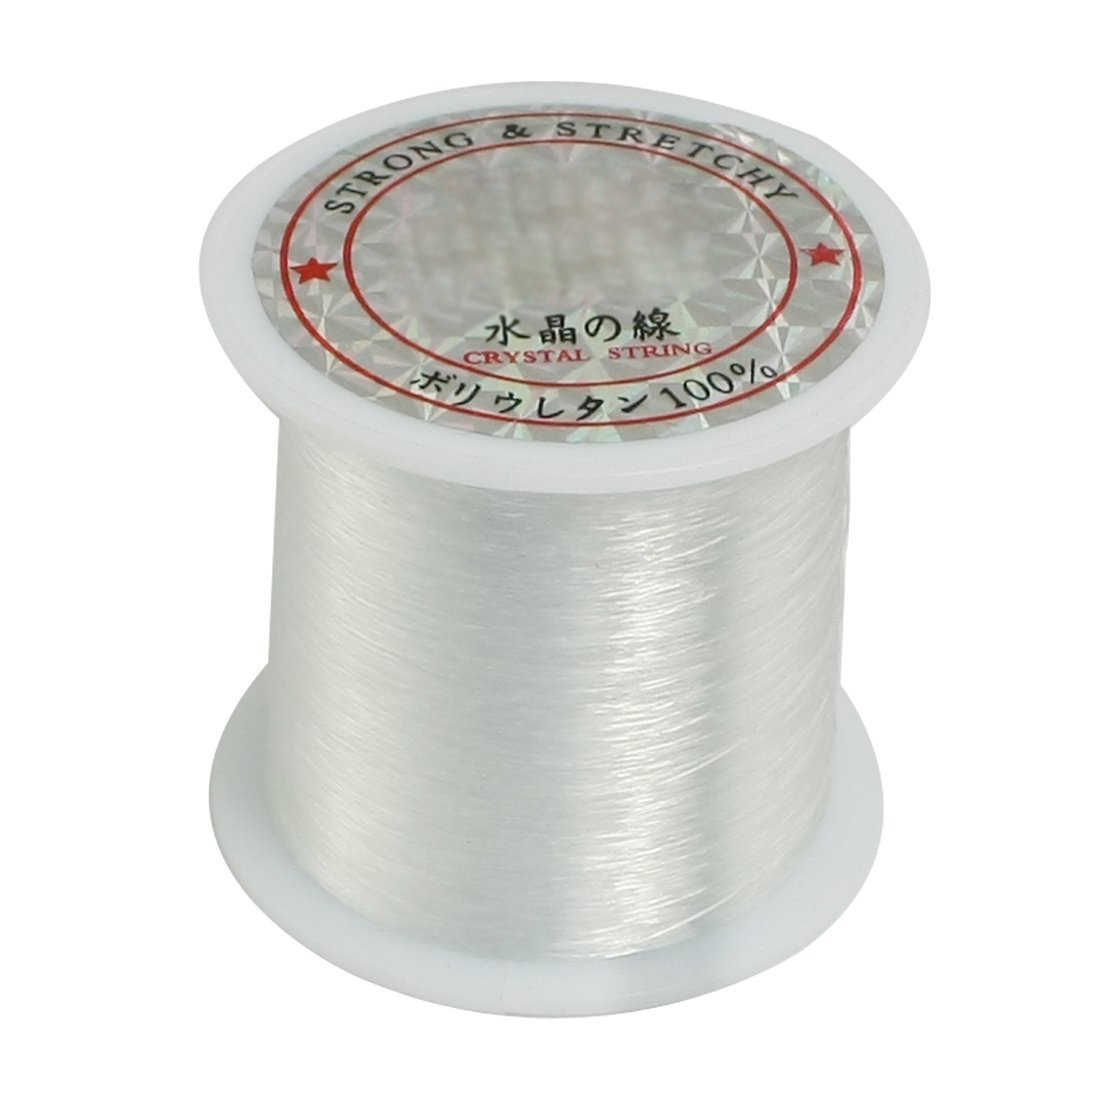 0.2mm Diameter Clear Nylon Fish Fishing Line Spool Beading String